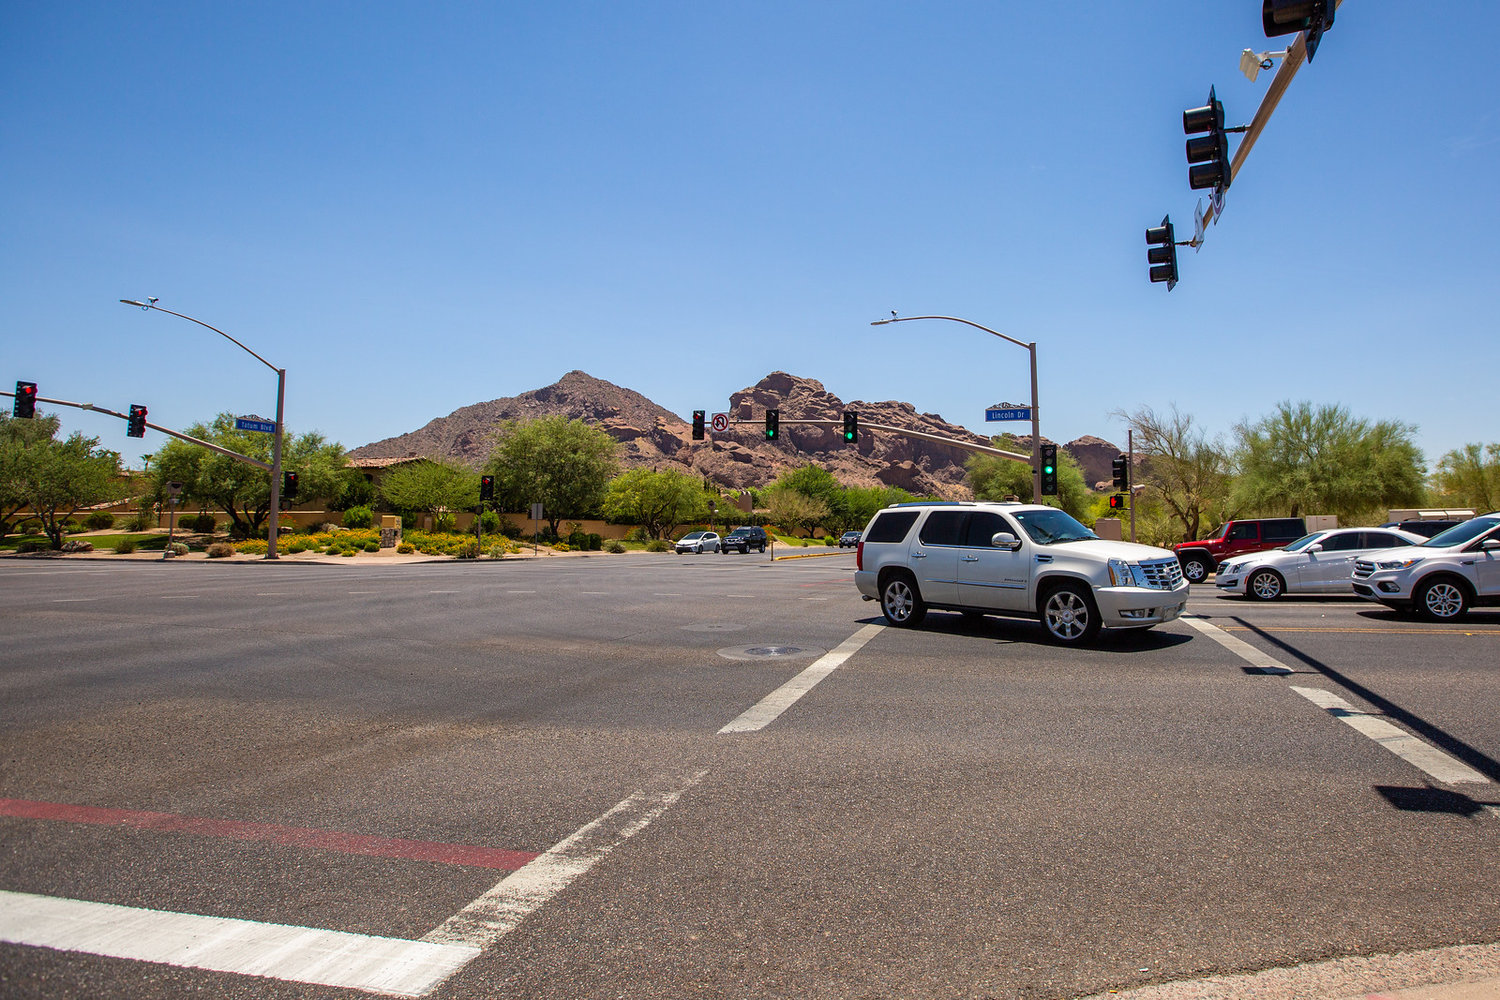 Paradise Valley roadways are in stellar condition, experts say, reporting a low-amount of rehabilitation needed on the thoroughfares.